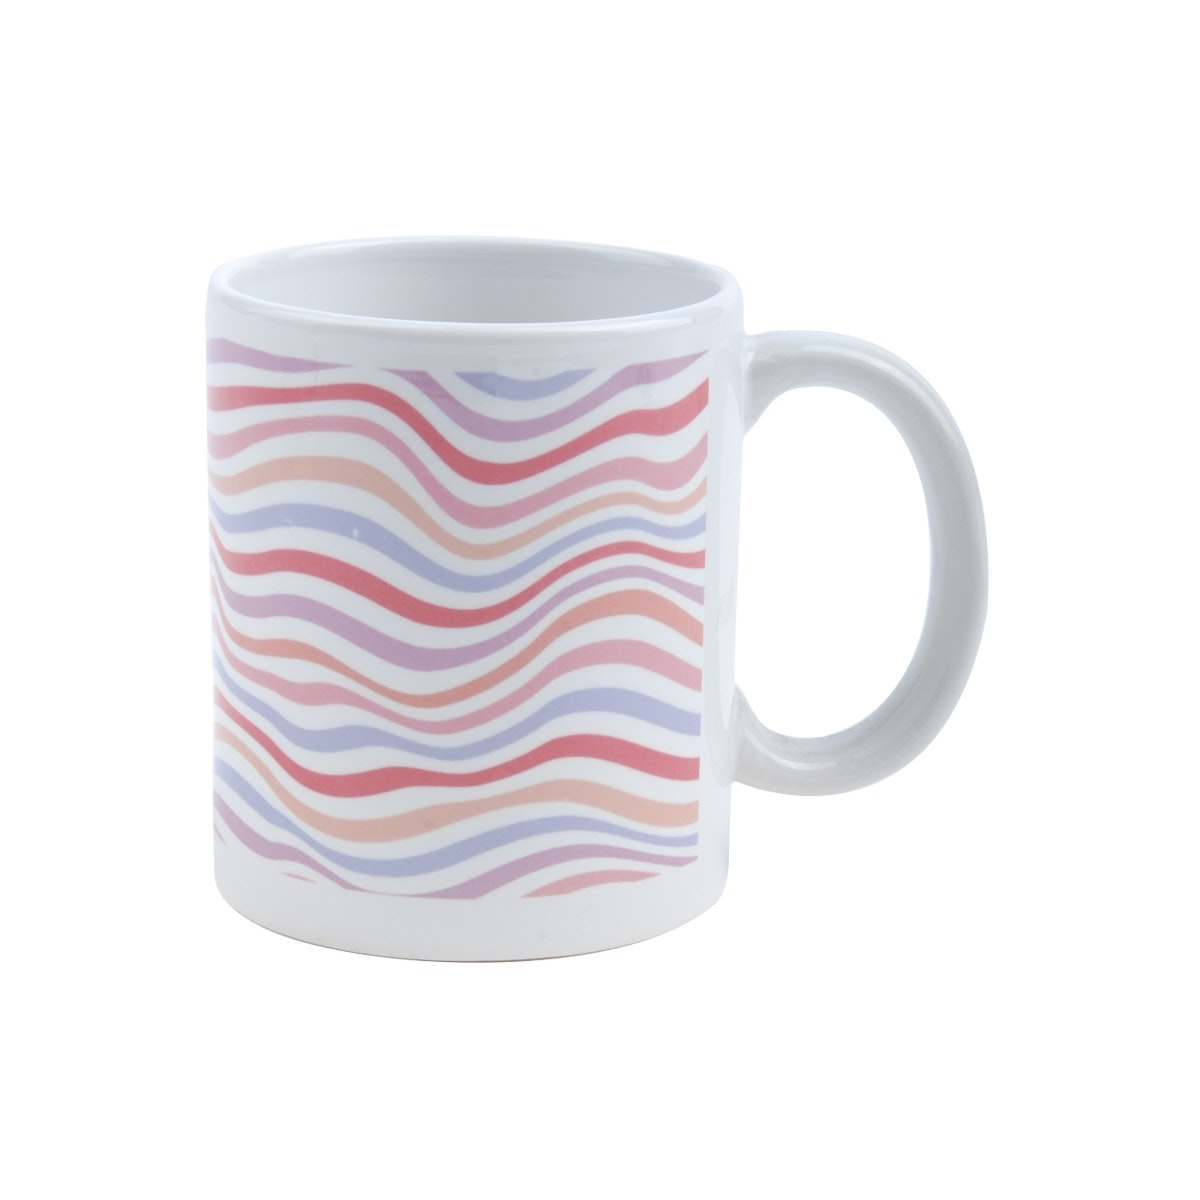 KAWUNG LIVING Technicolor Zebra Mug